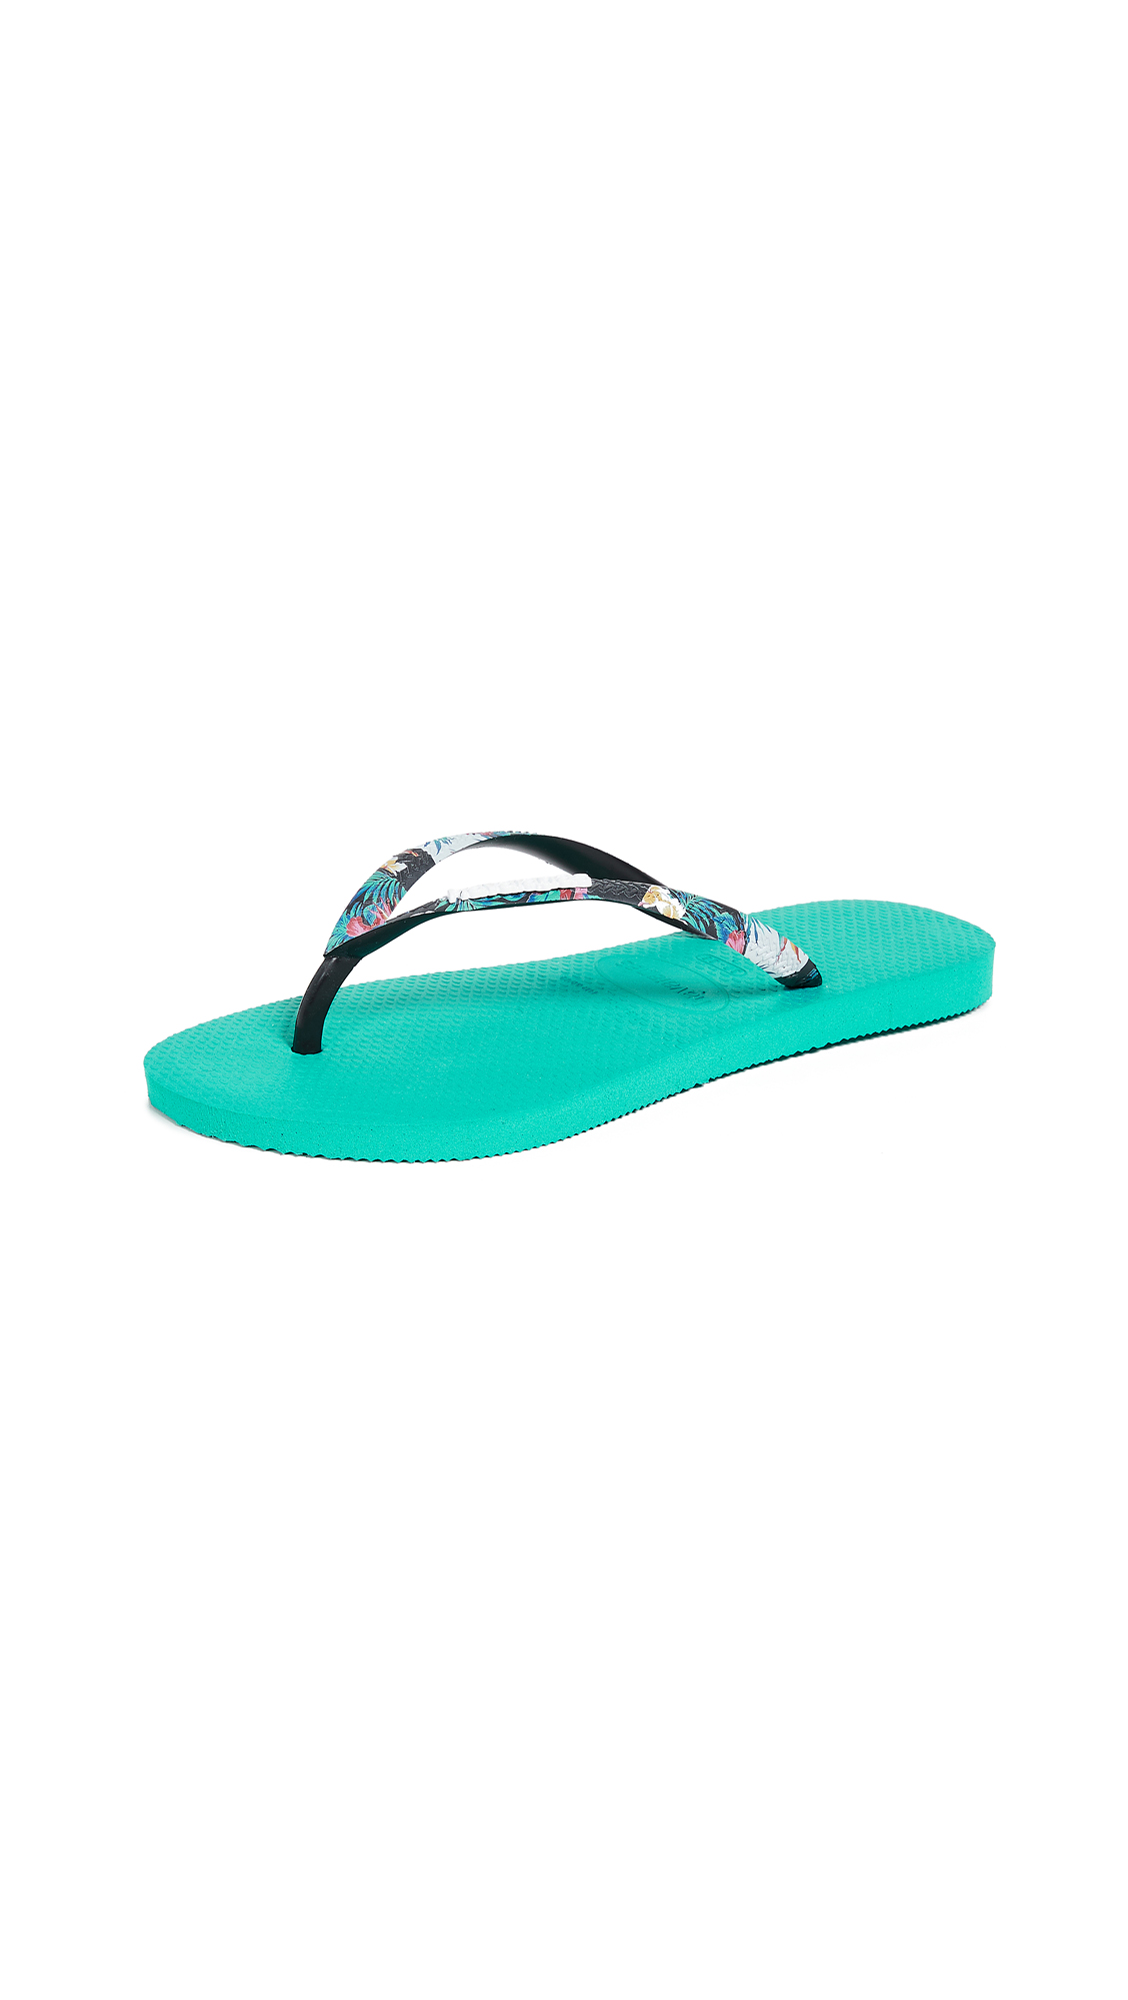 Havaianas Slim Strapped Flip Flops - Lake Green